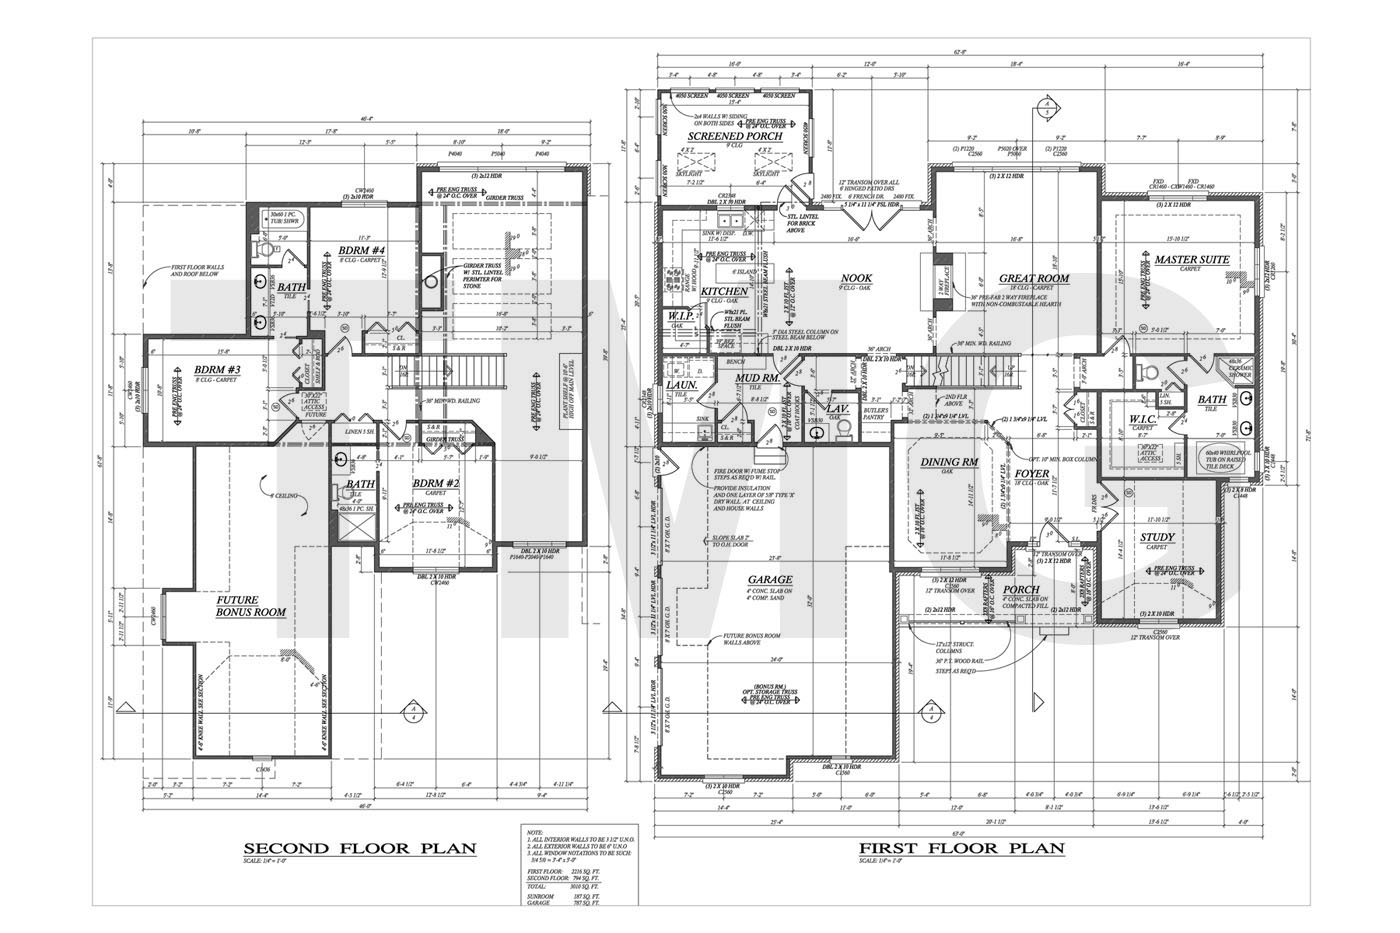 hight resolution of first second floor plan electrical plan